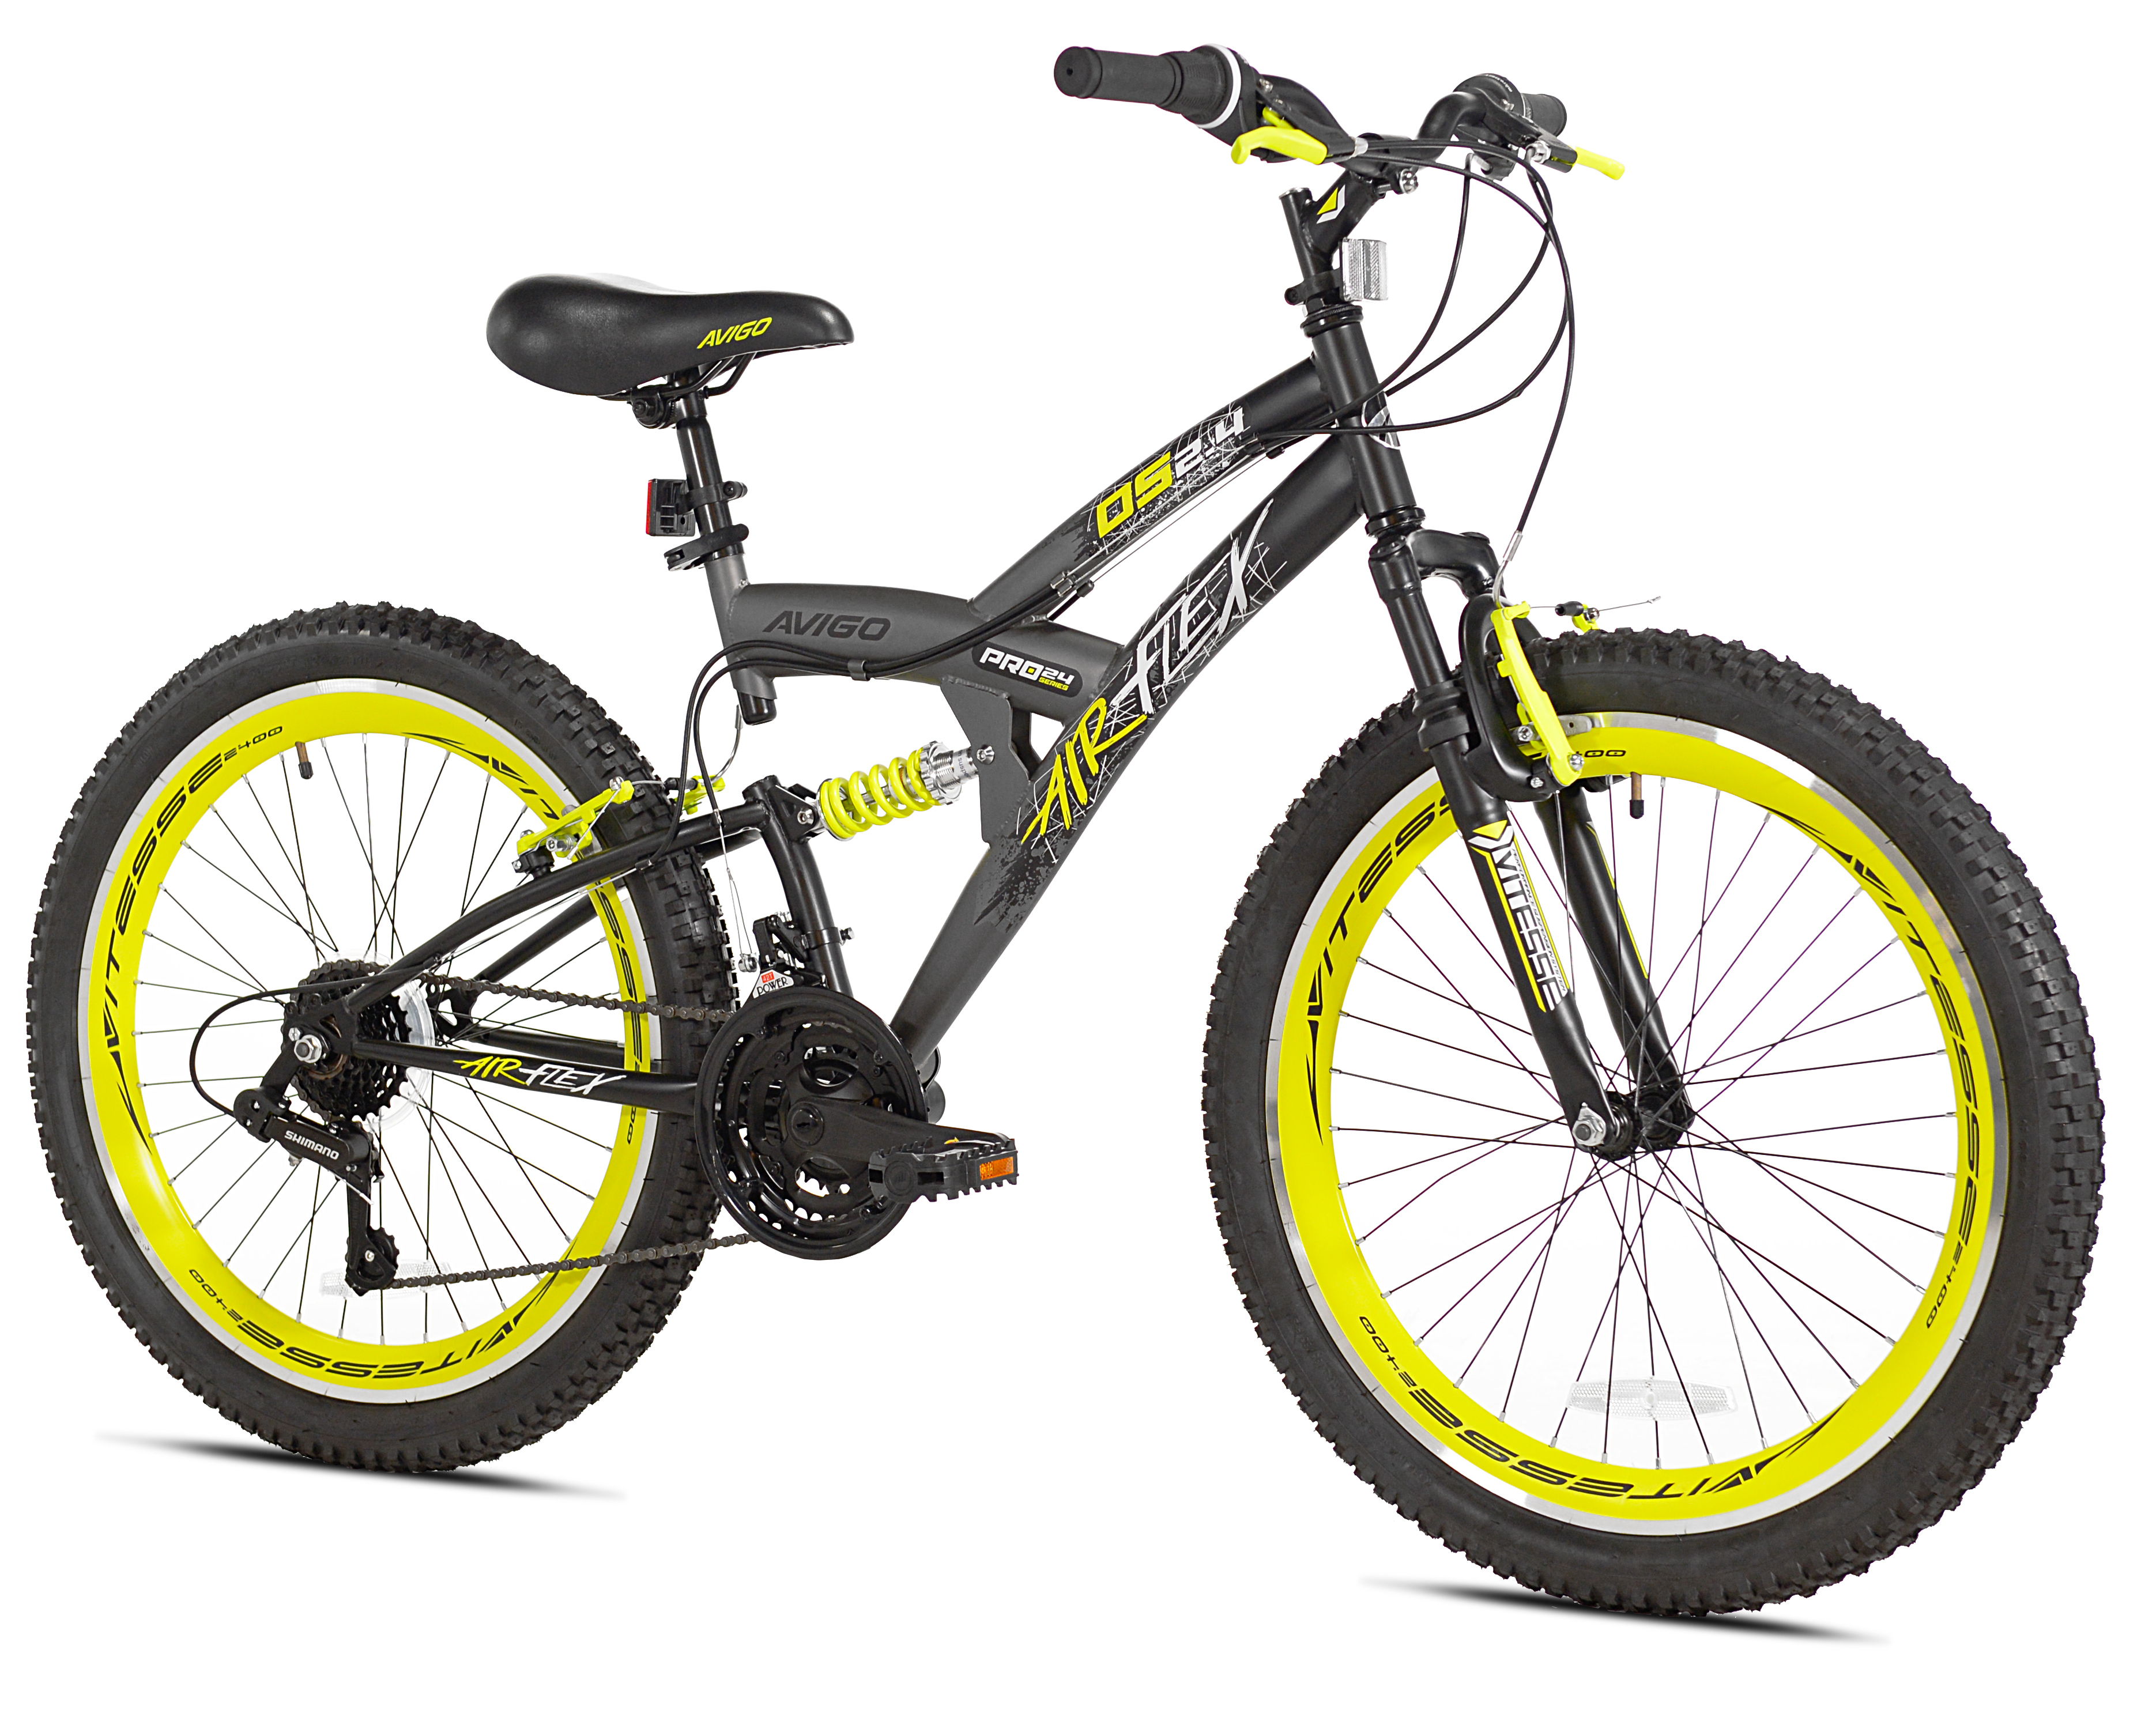 "Avigo 24"" Air Flex Dual Suspension Men's Bike, Grey, For 4'6"" Height Sizes and Up by Kent International Inc"